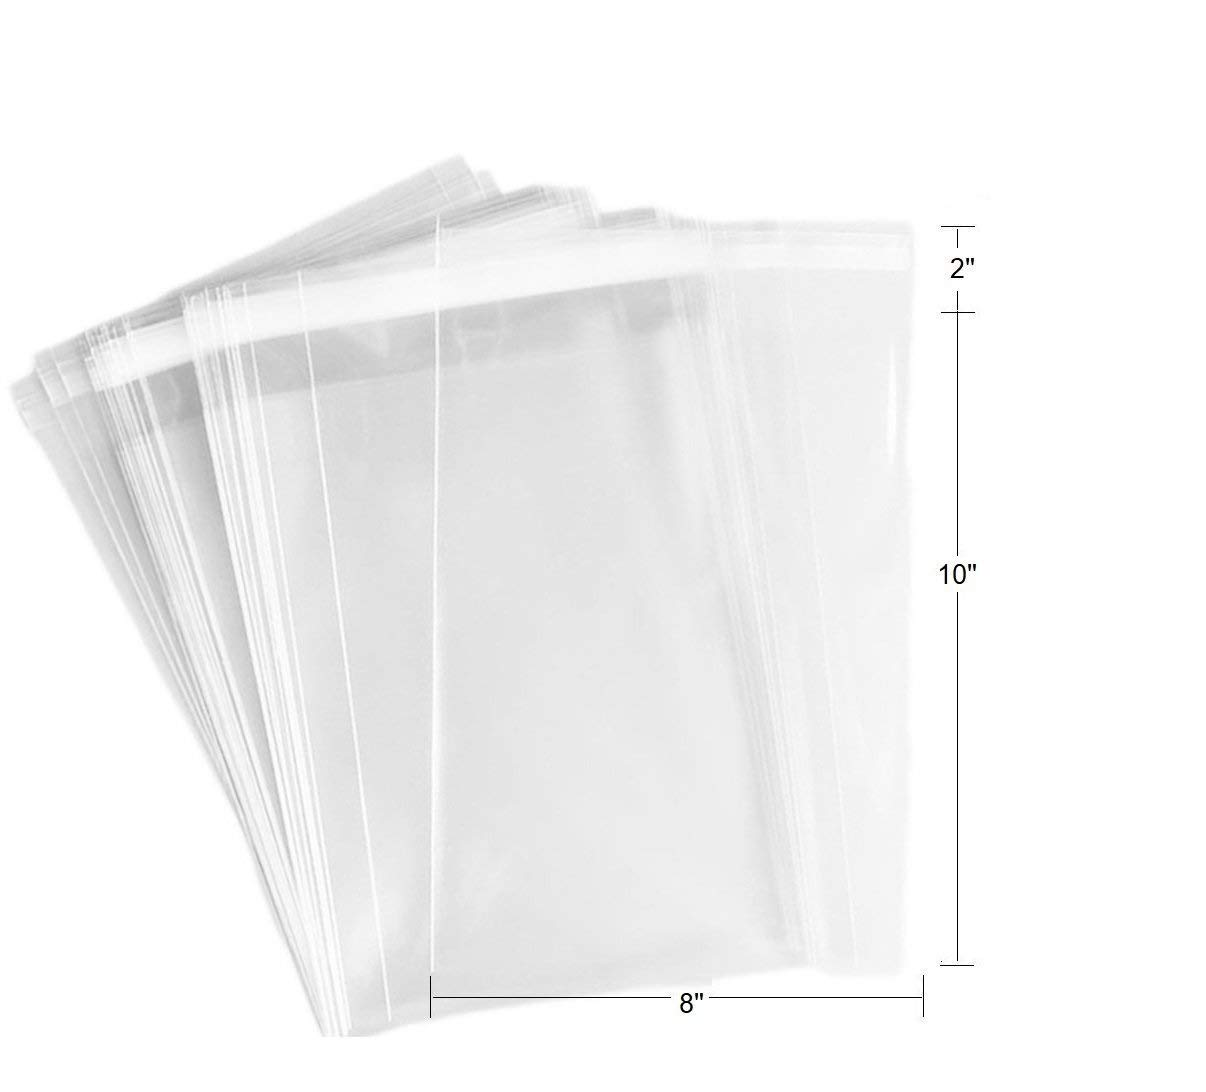 3 x 4 Candle FlanicaUSA 100 pcs Clear Flat Resealable Cello// Cellophane Bags Good for Bakery Soap Cookie,jewelry items bags.